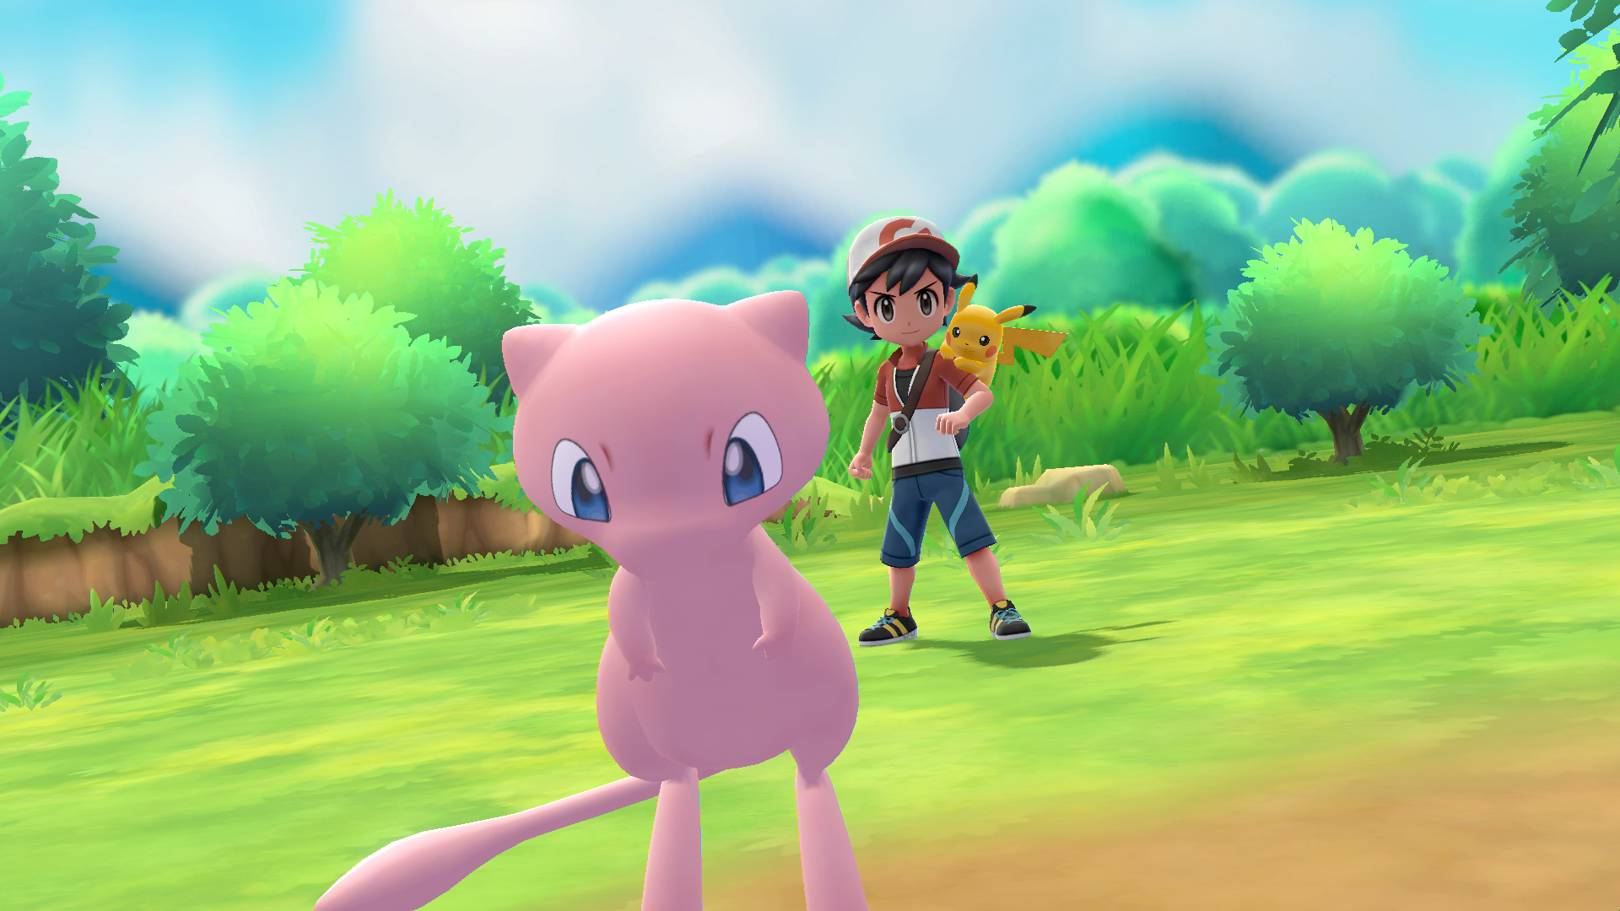 E3 2018 Hands On Pokémon Lets Go Pikachu And Eevee On Nintendo